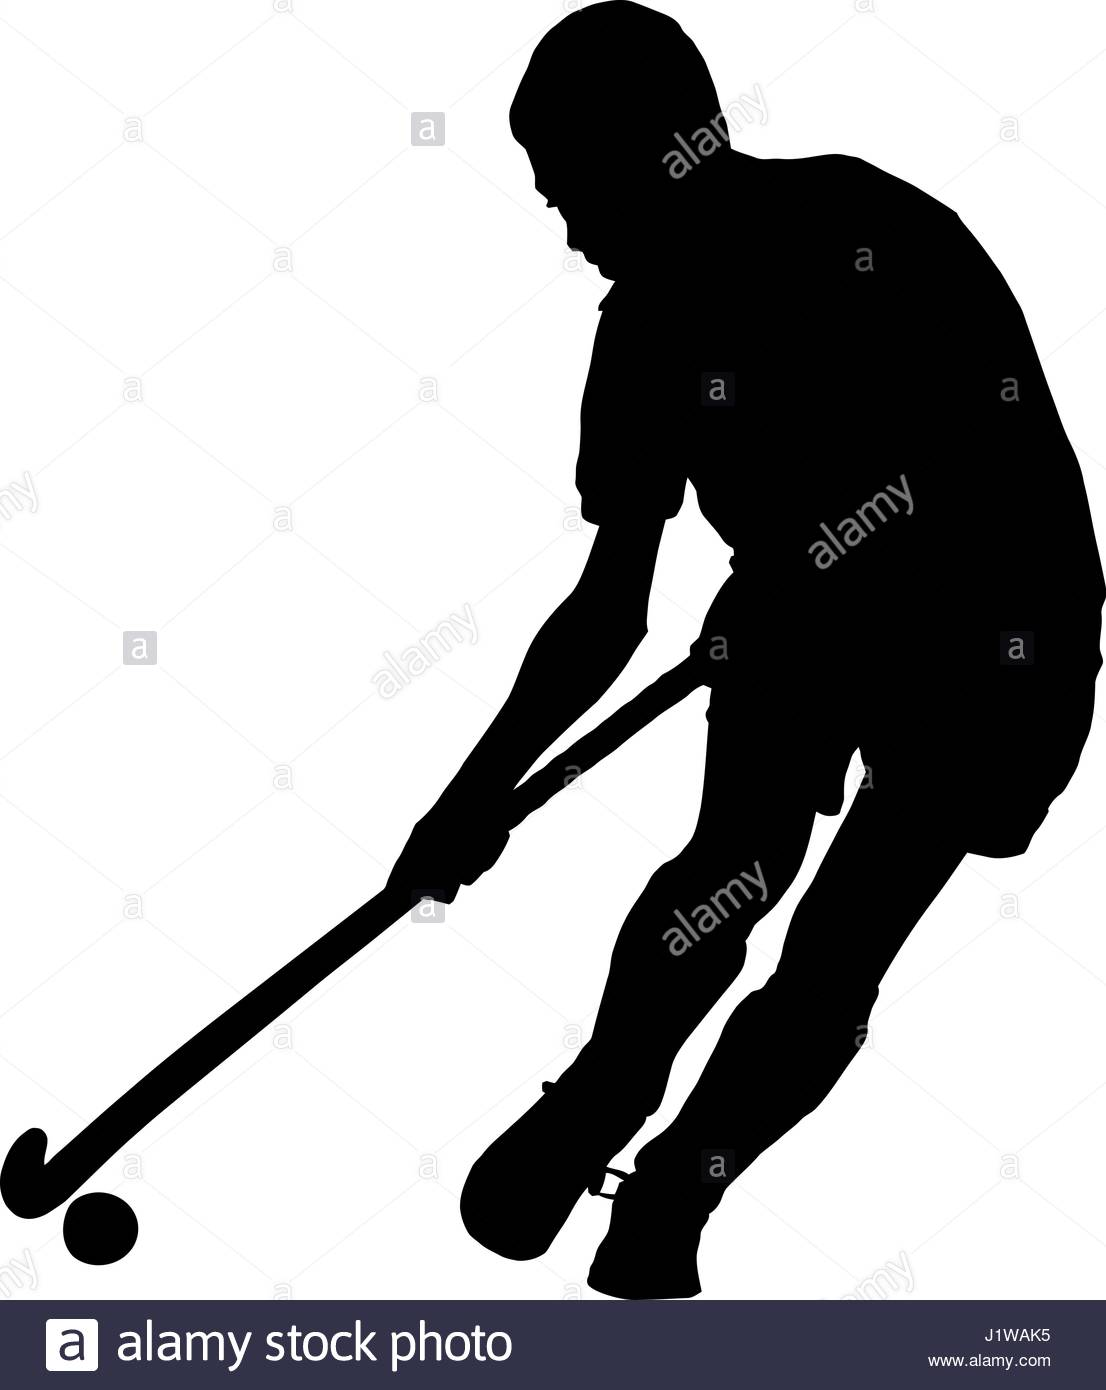 1106x1390 Black On White Silhouette Of School Boy Hockey Player Running